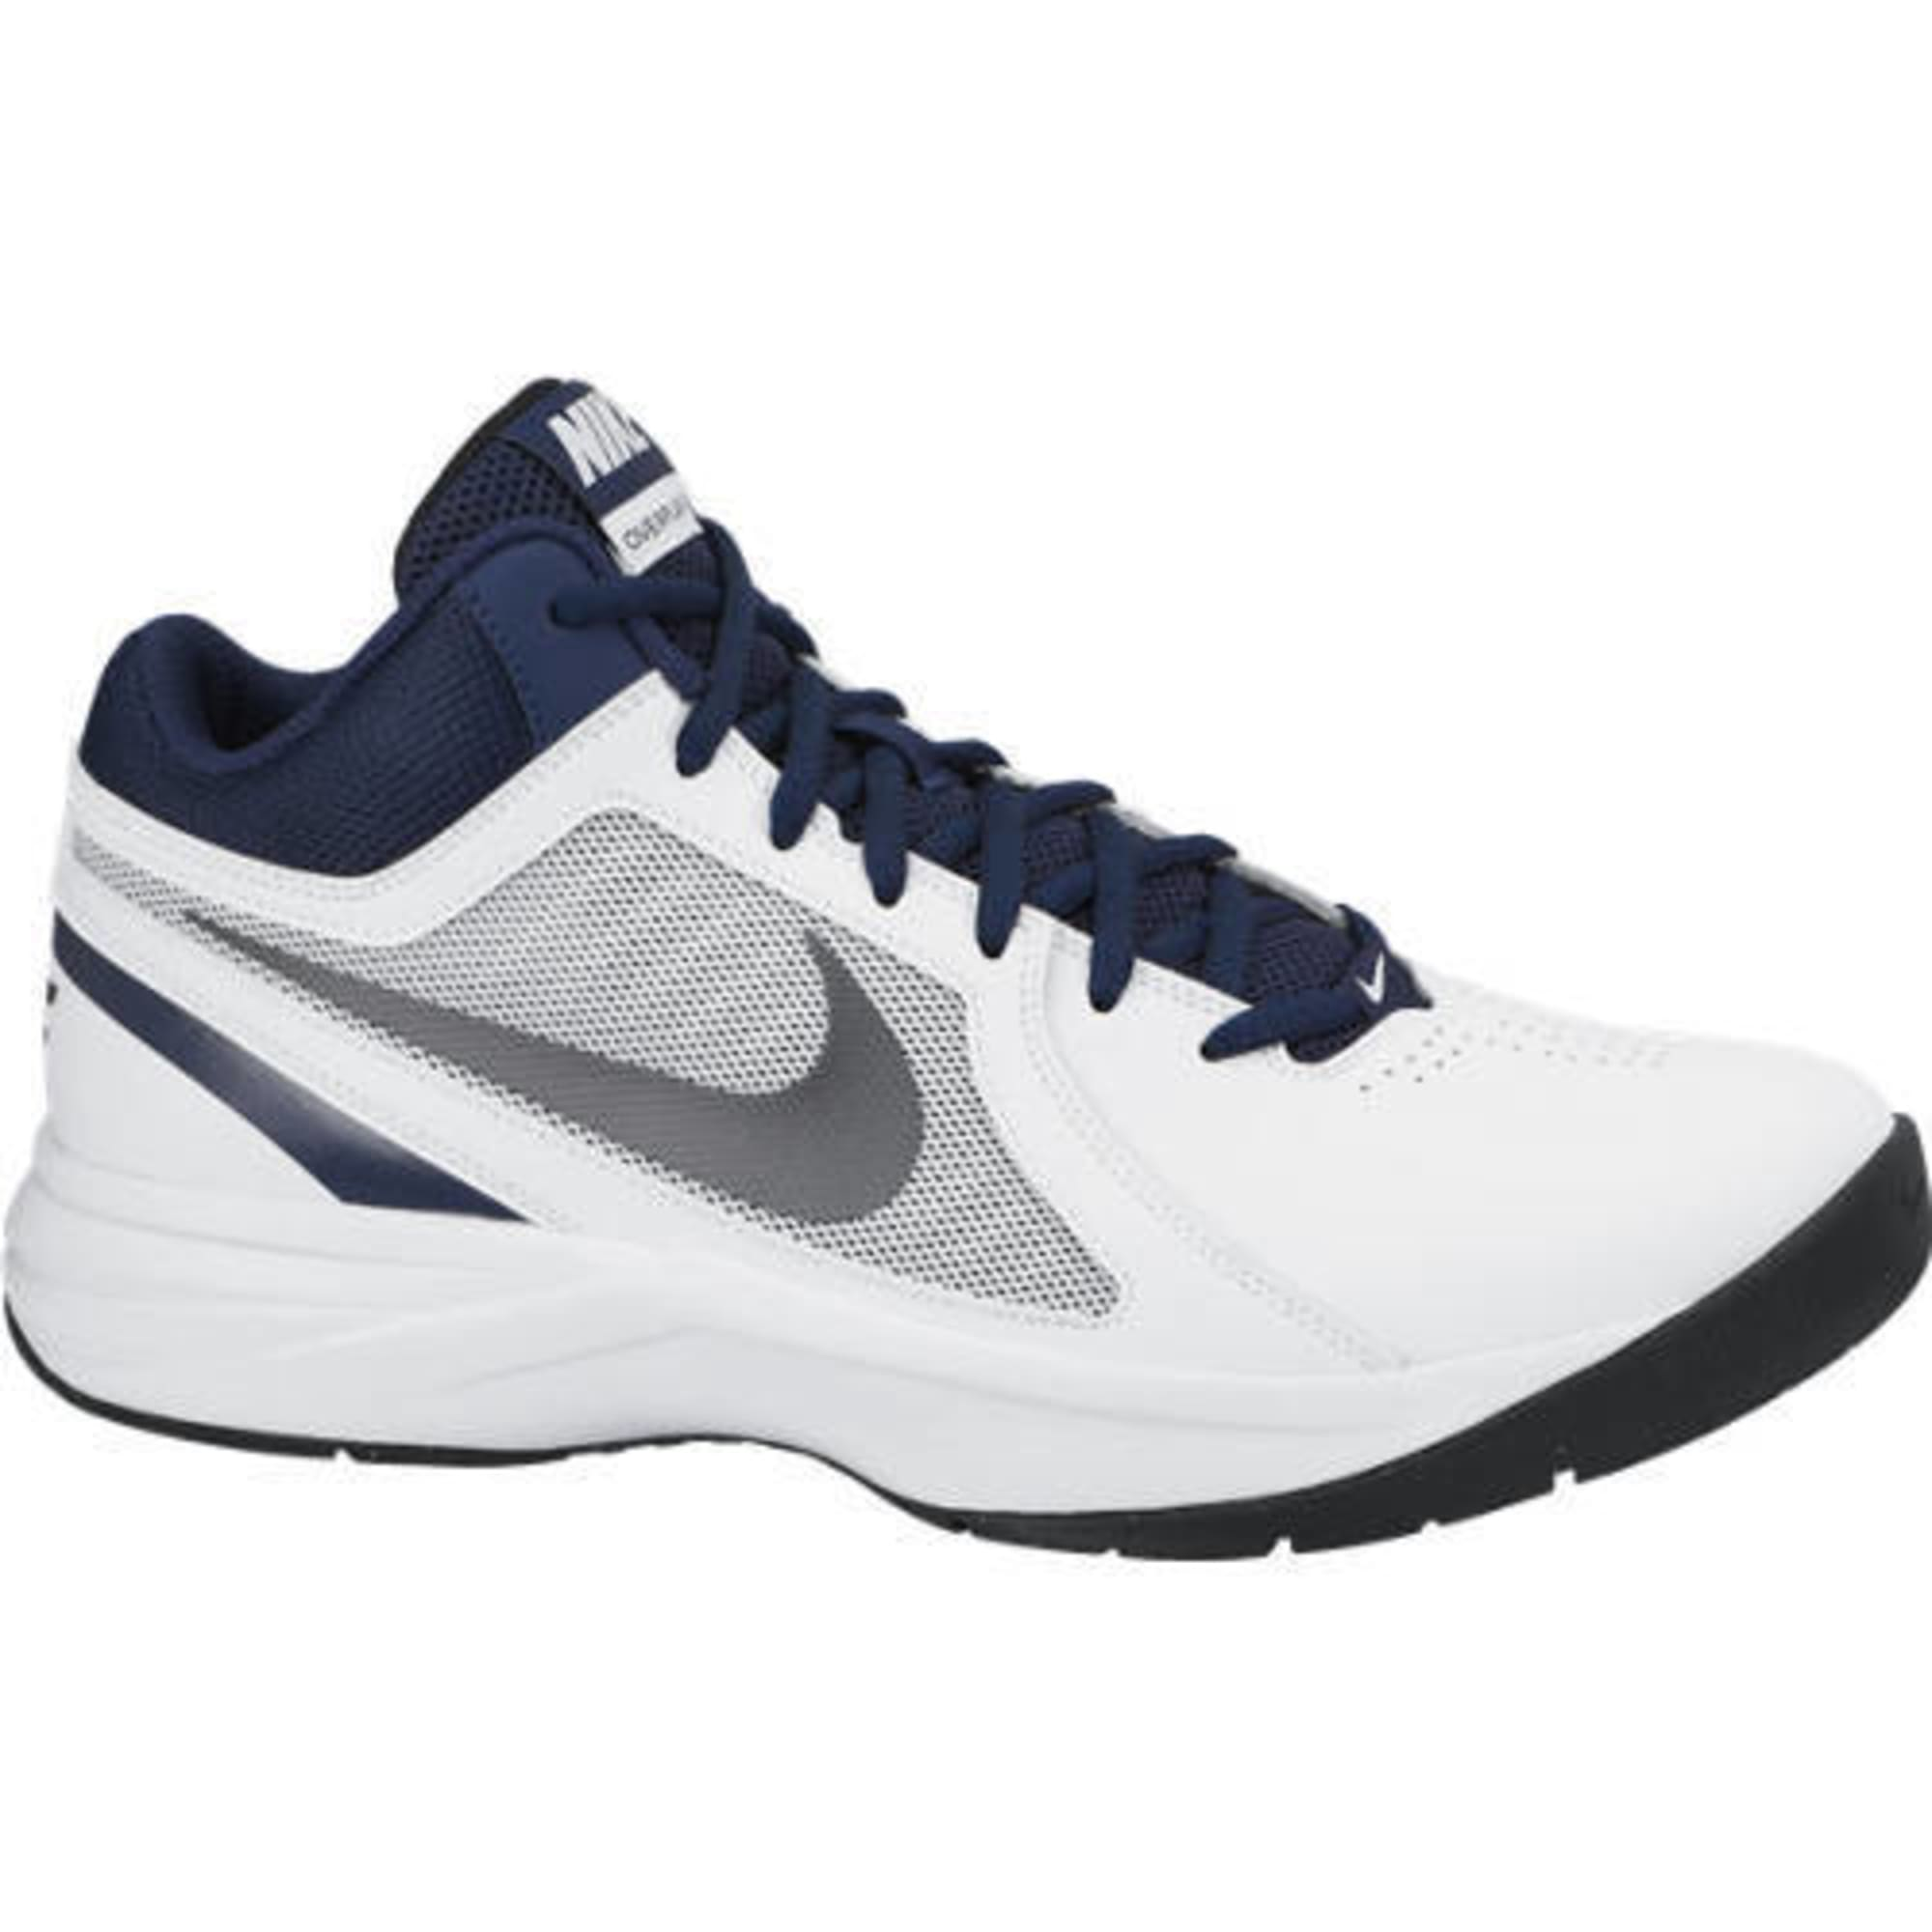 7076a31a94bbc NIKE Men's The Overplay VIII Basketball Shoes - Bob's Stores